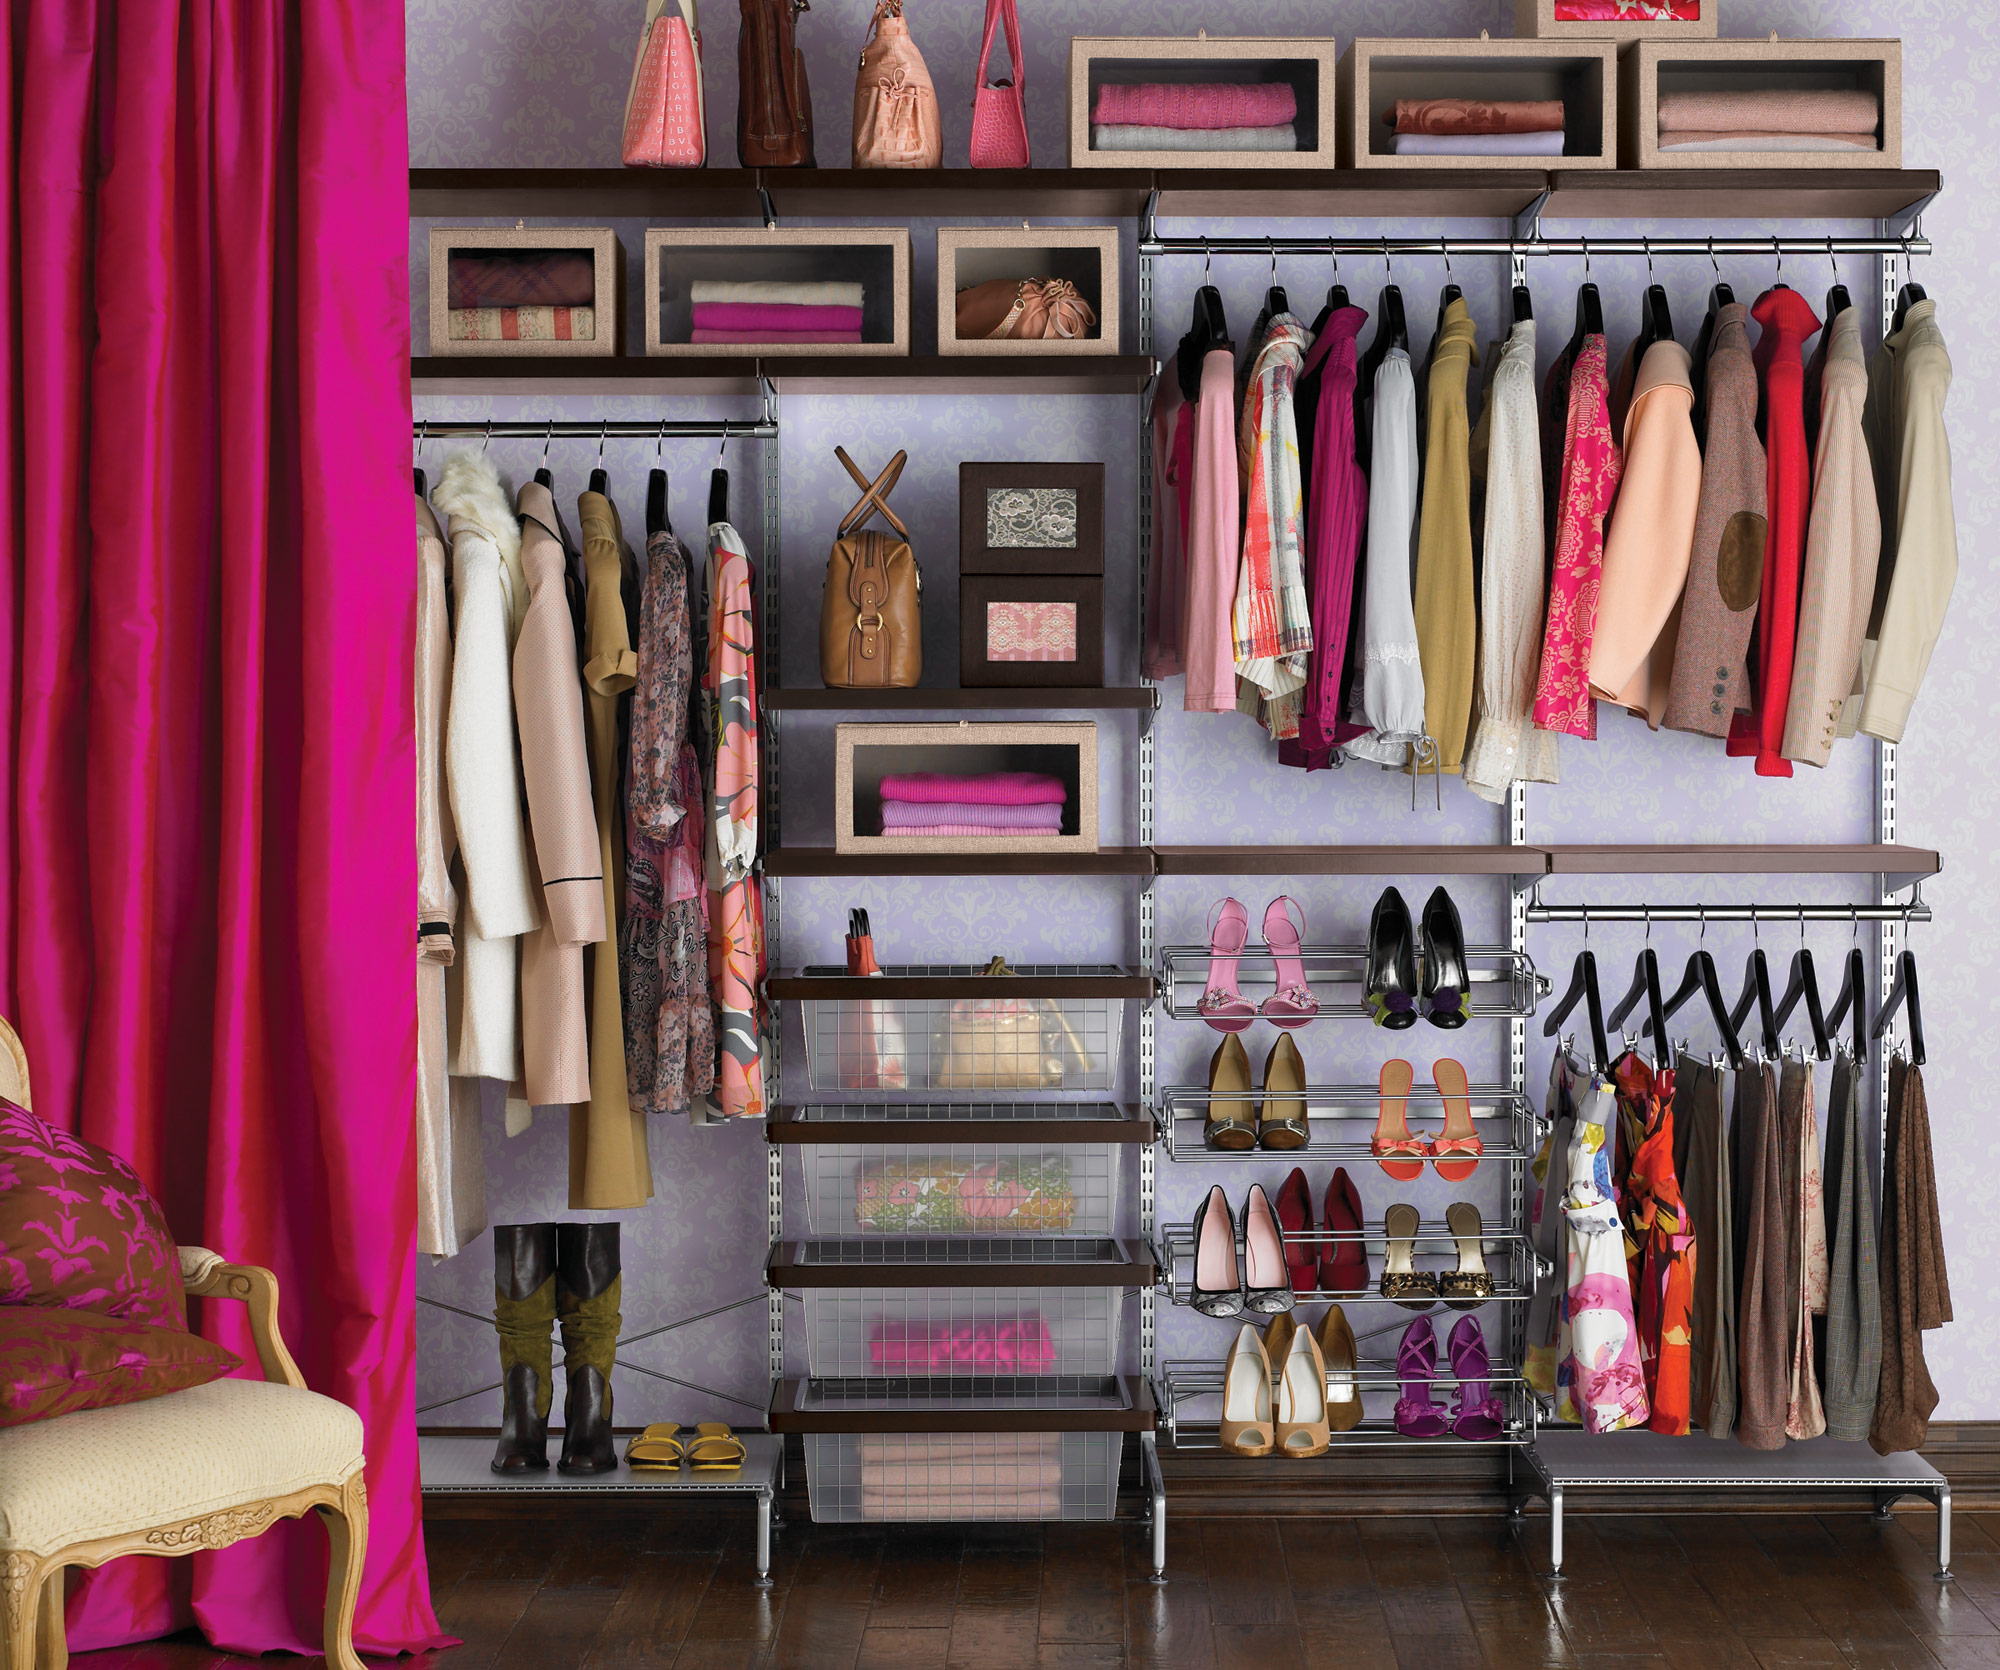 Superb Friday Finds: How To Build The Perfect Wardrobe